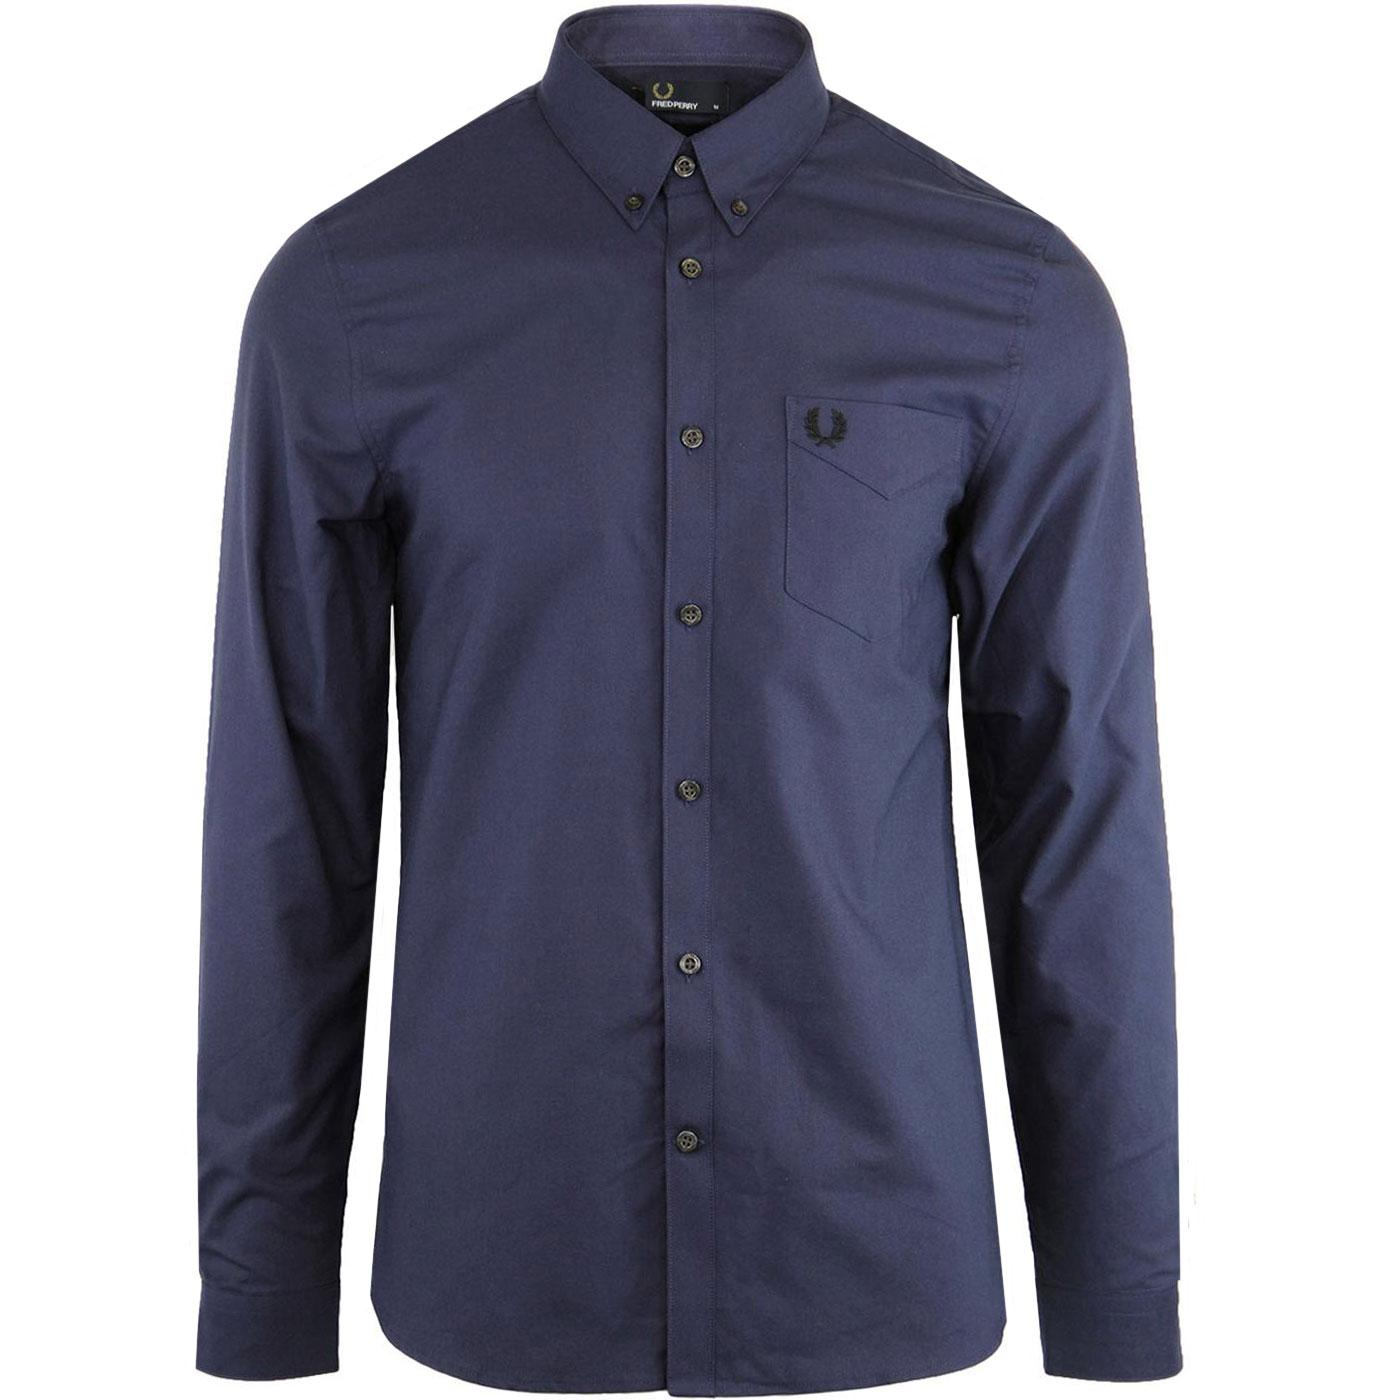 FRED PERRY Men's Classic Mod 60s Oxford Shirt (VB)